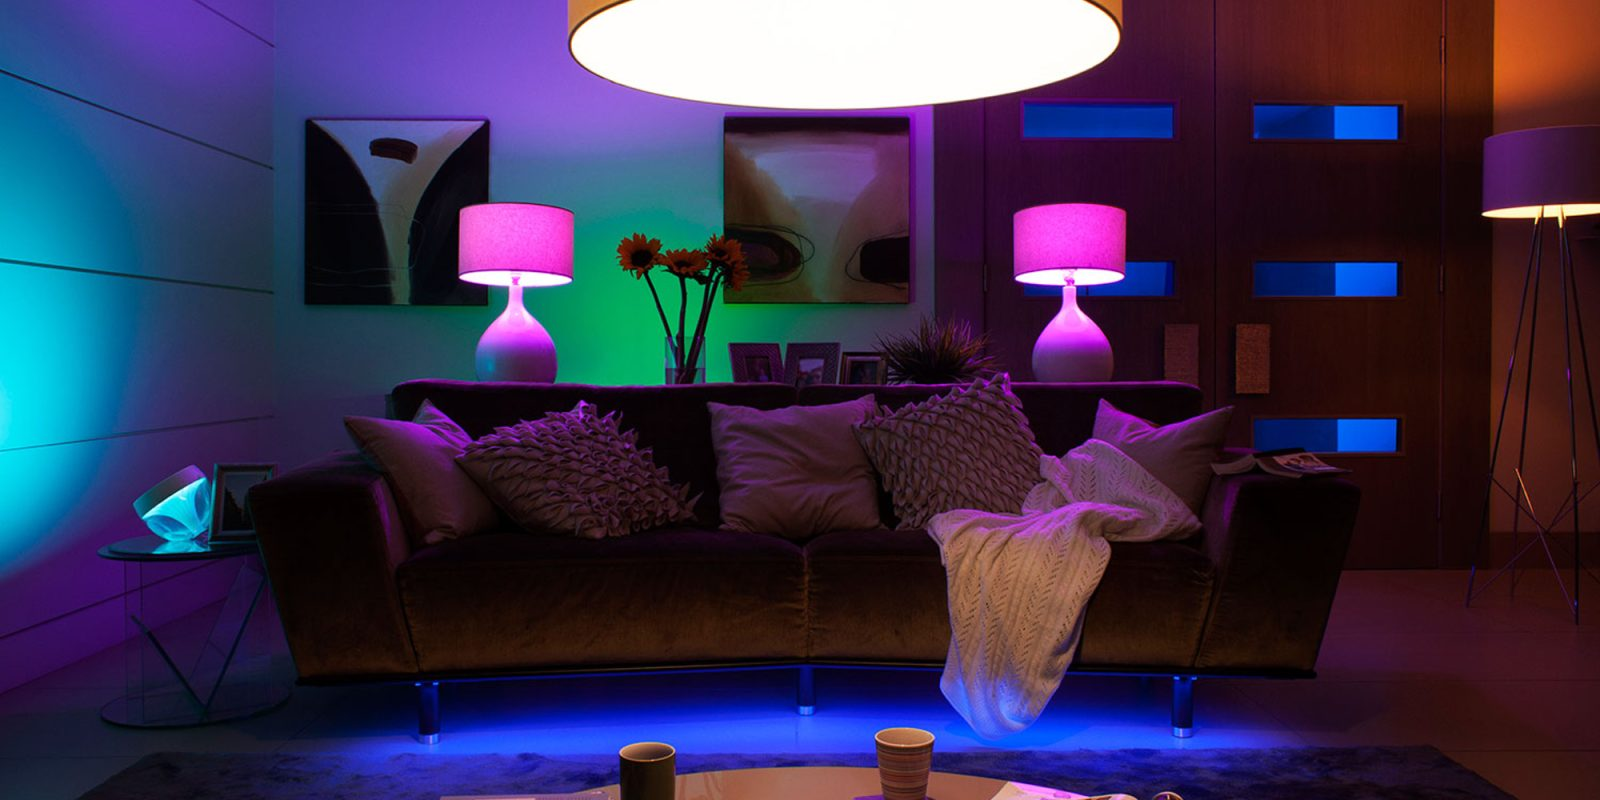 Illuminate your space with the HomeKit-enabled Philips Hue Color bundle for $100 (Reg. $150), more